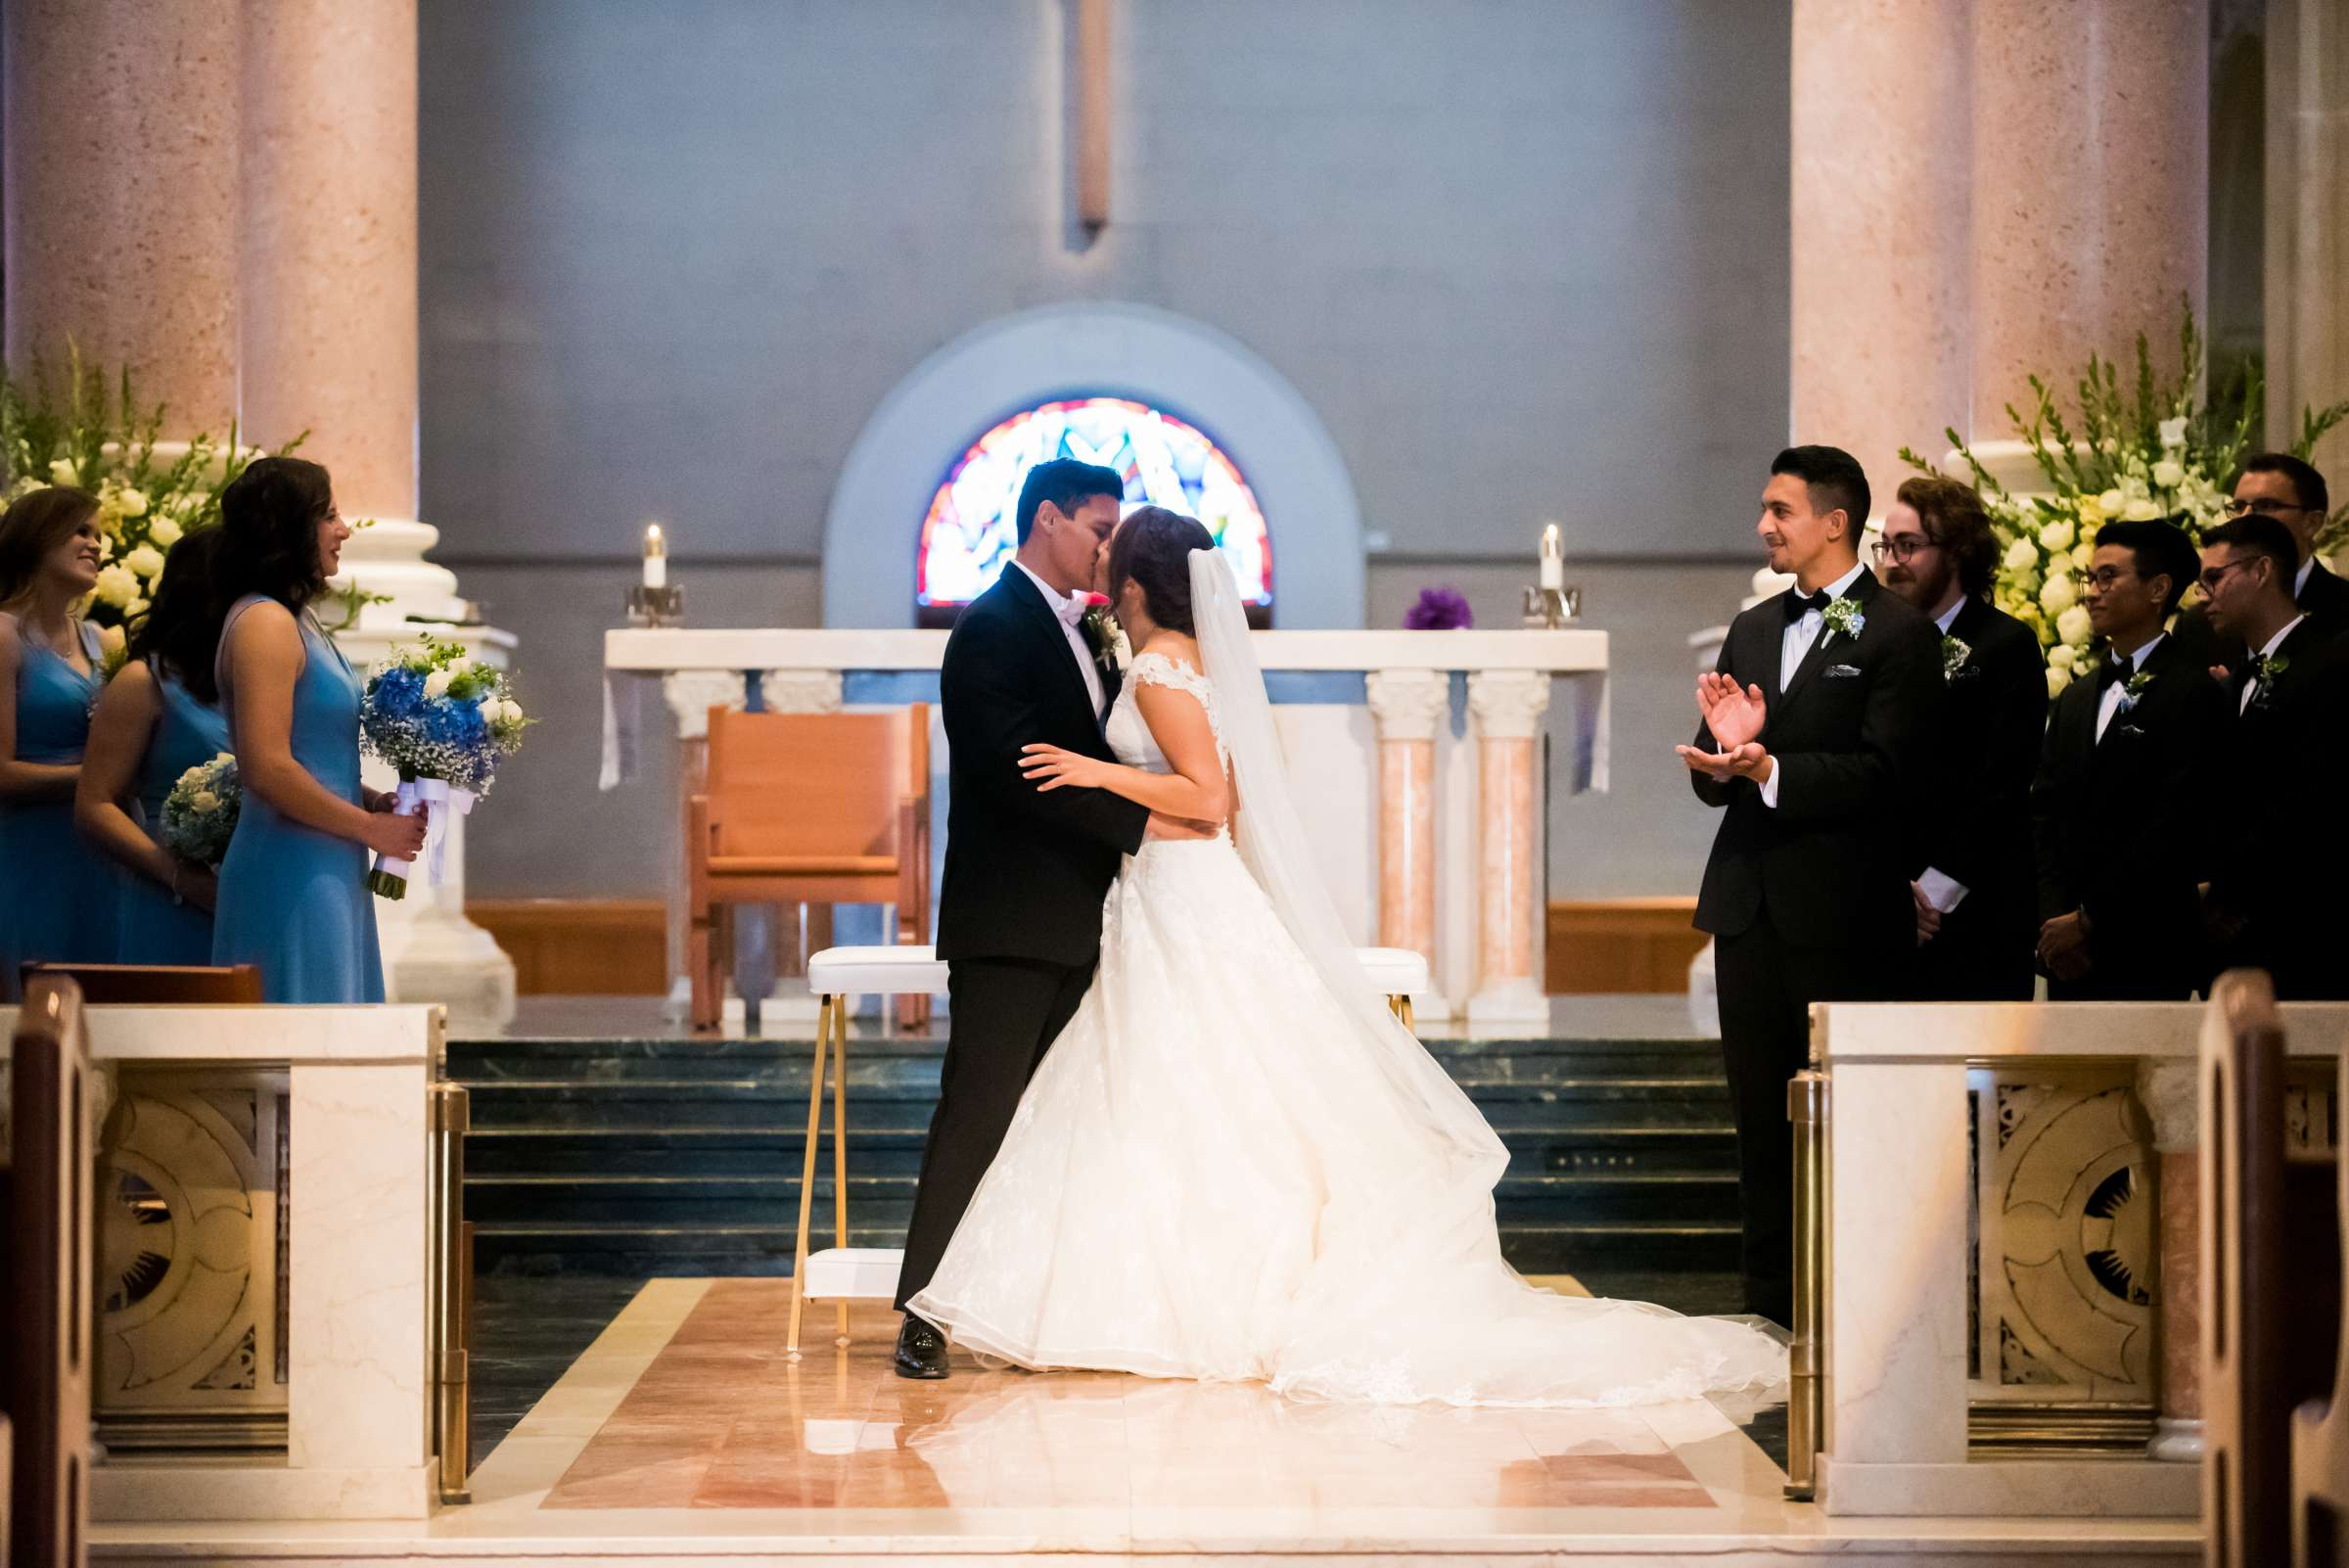 The Immaculata Wedding, Arianna and Jonah Wedding Photo #133 by True Photography